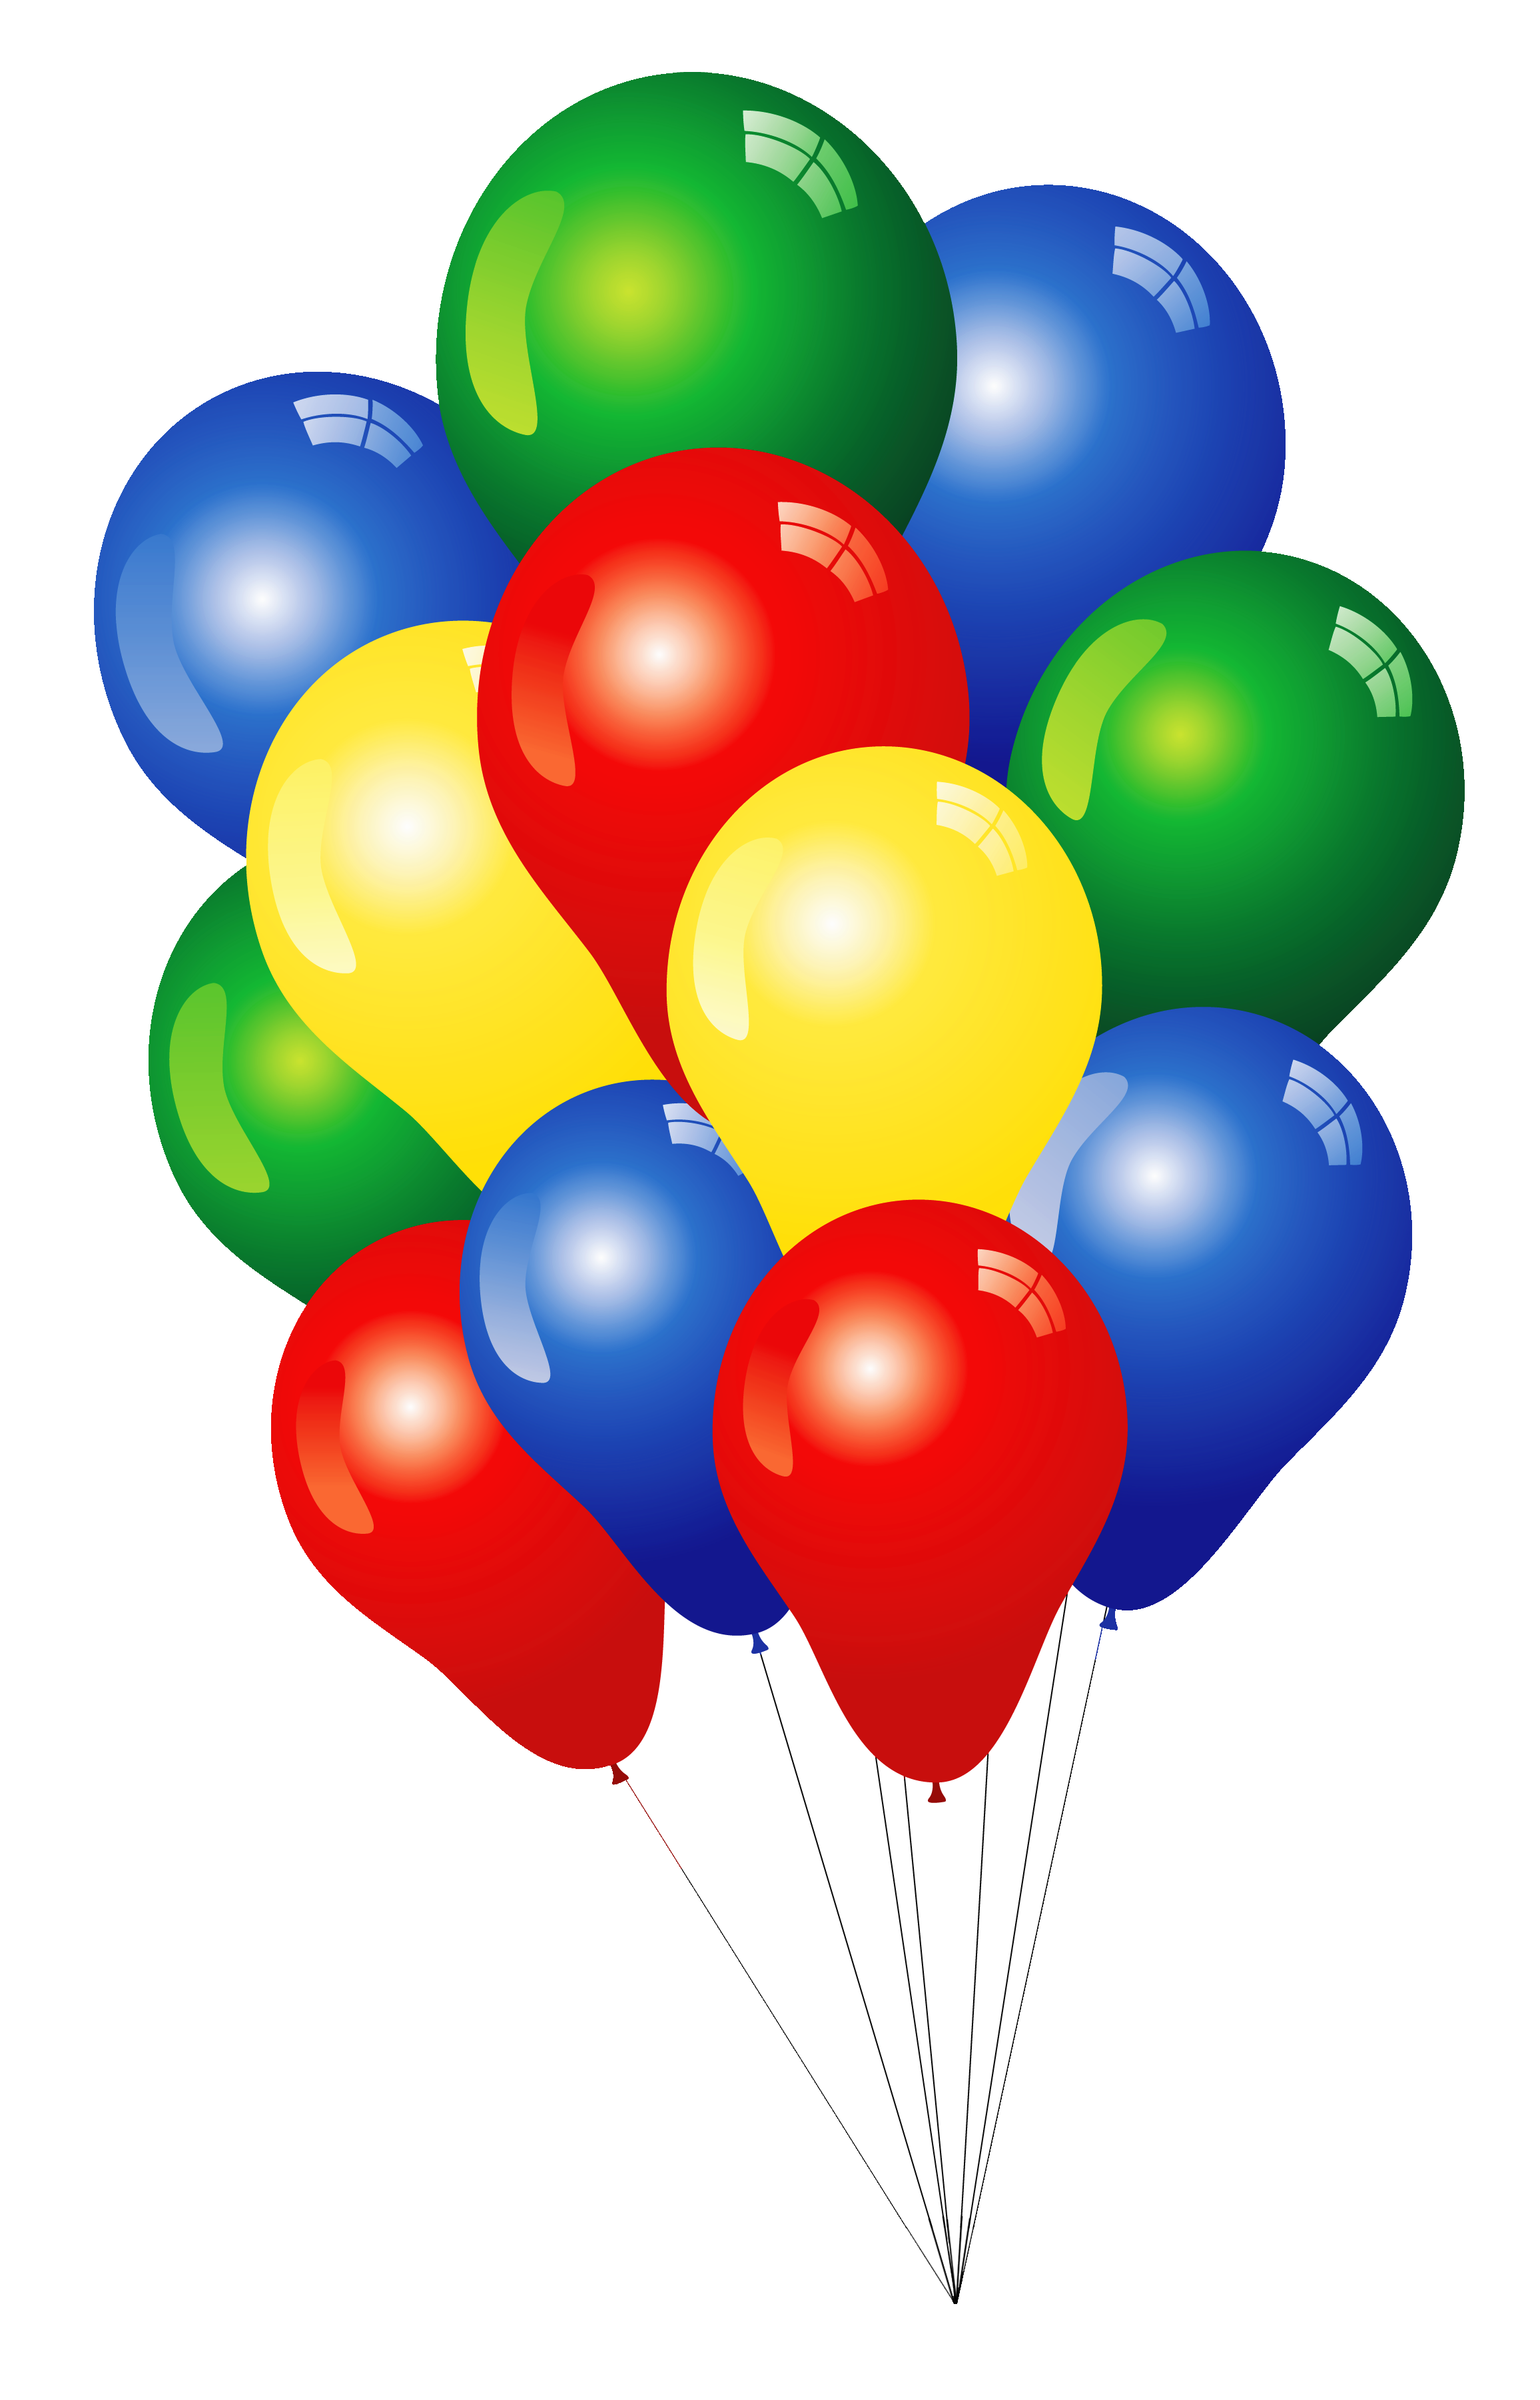 Other clipart colourful balloon. Multi colored balloons